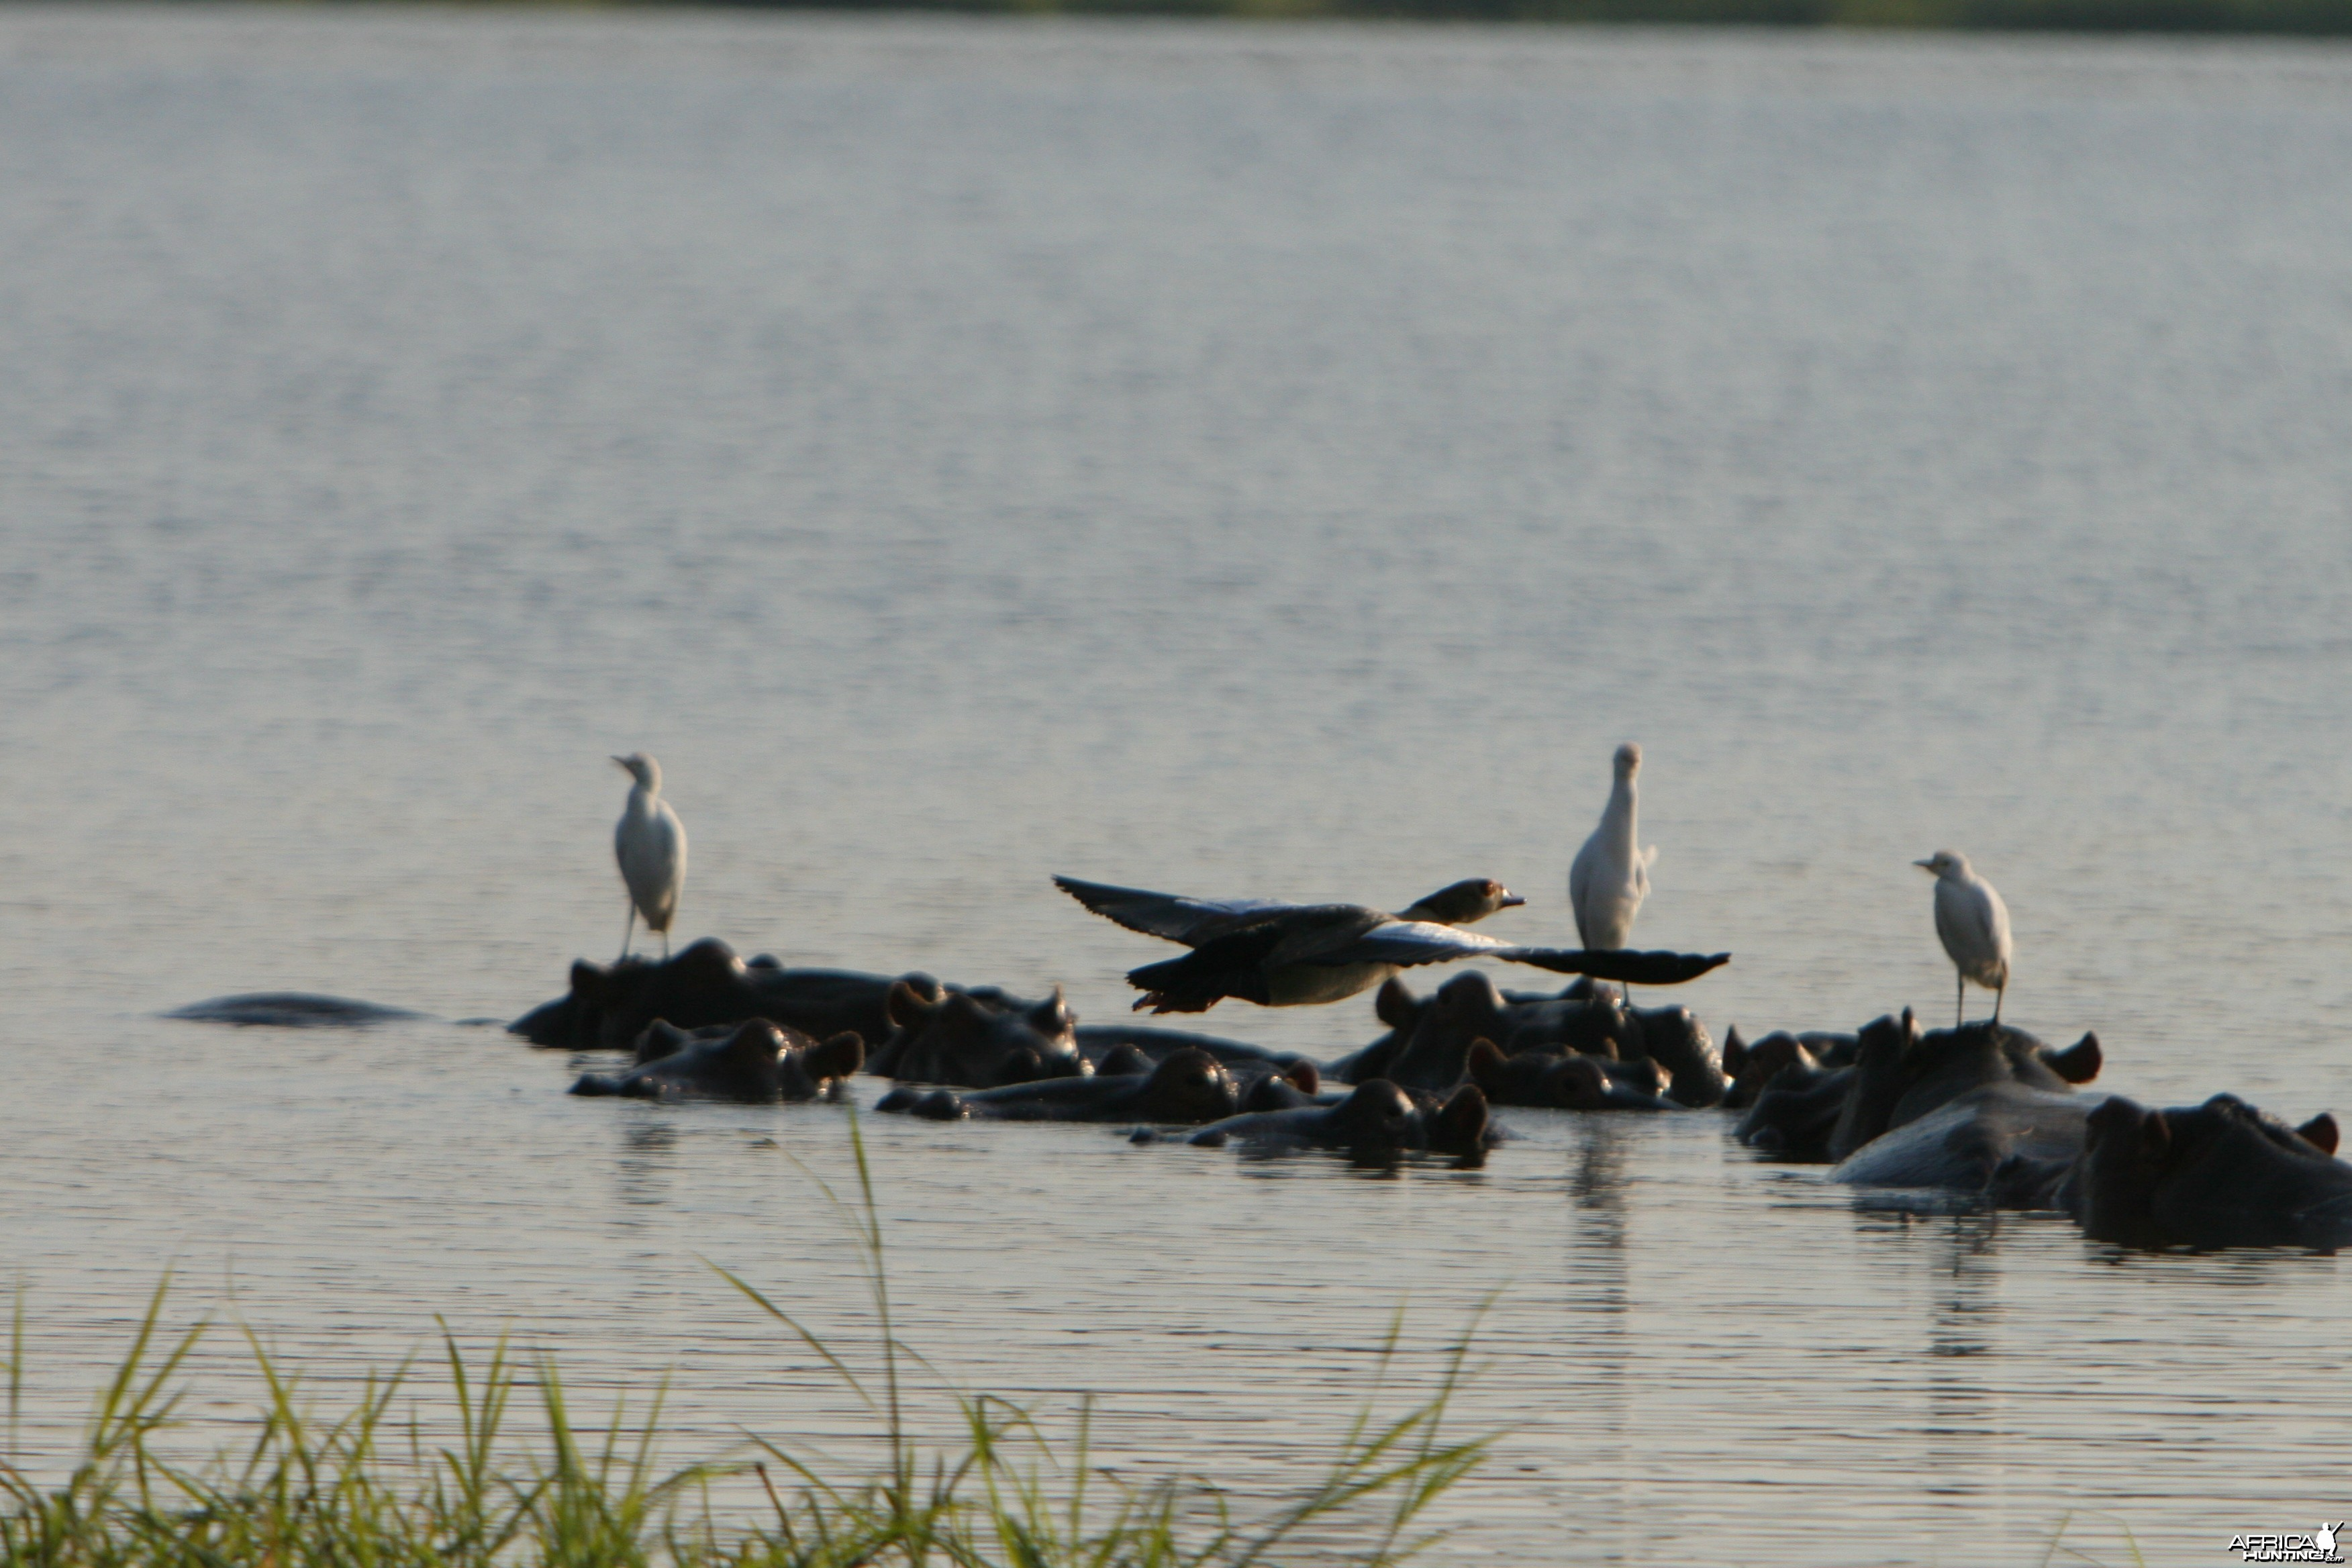 Egyptian Goose Snowy Egrets and the Hippo Island